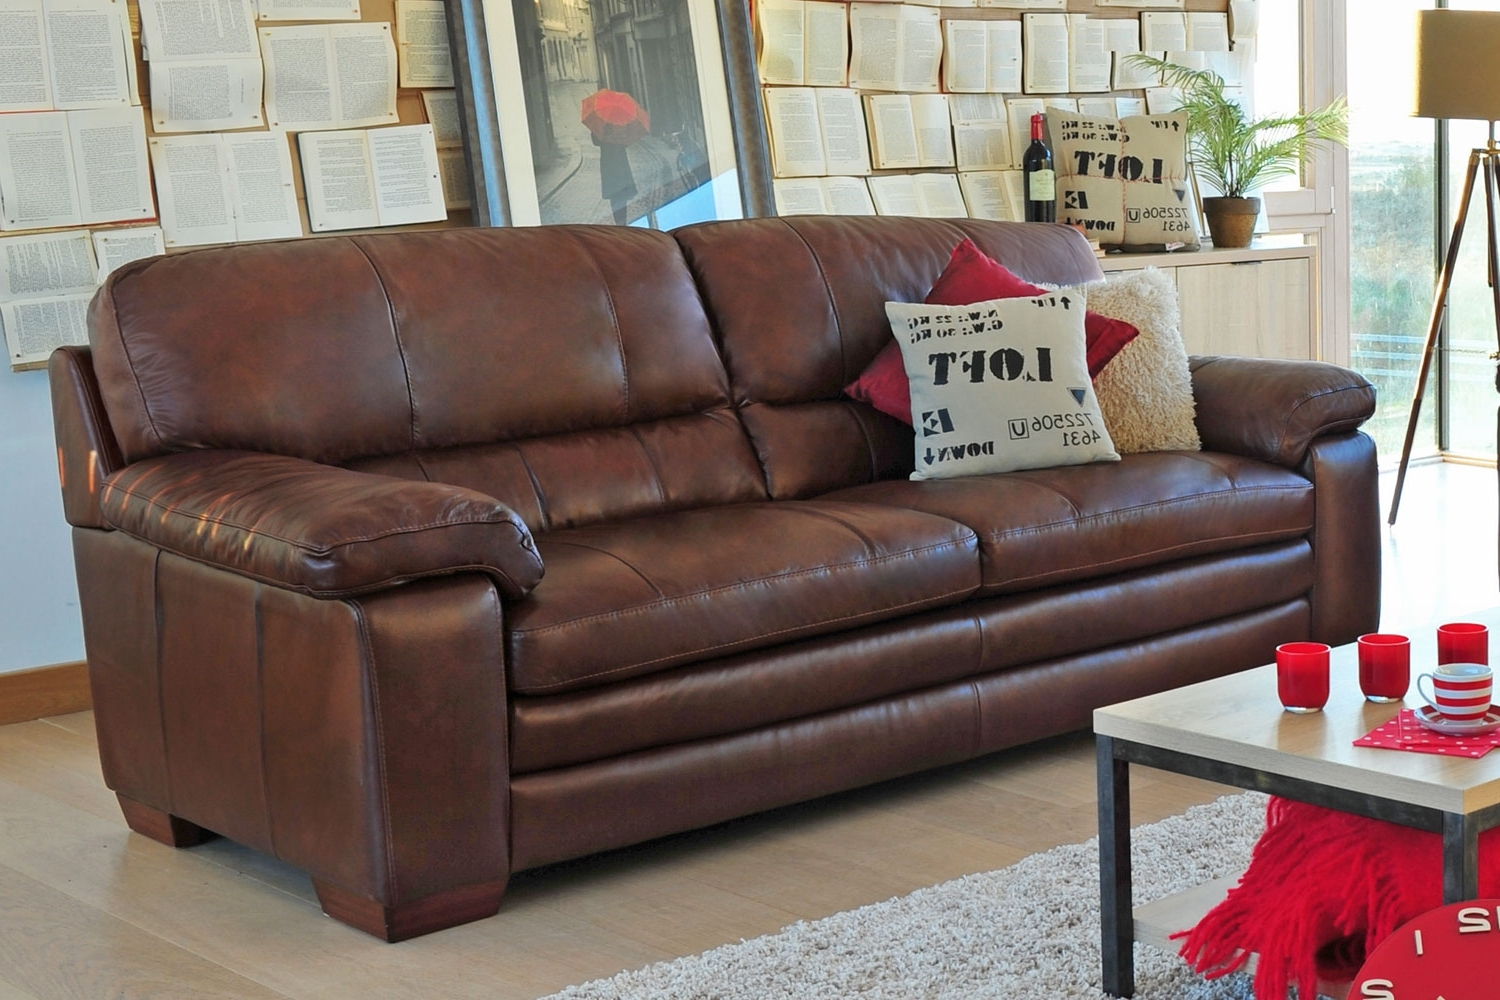 2017 Lumina 3 Seater Leather Sofa From Harvey Norman Ireland Inside 3 Seater Leather Sofas (View 6 of 15)